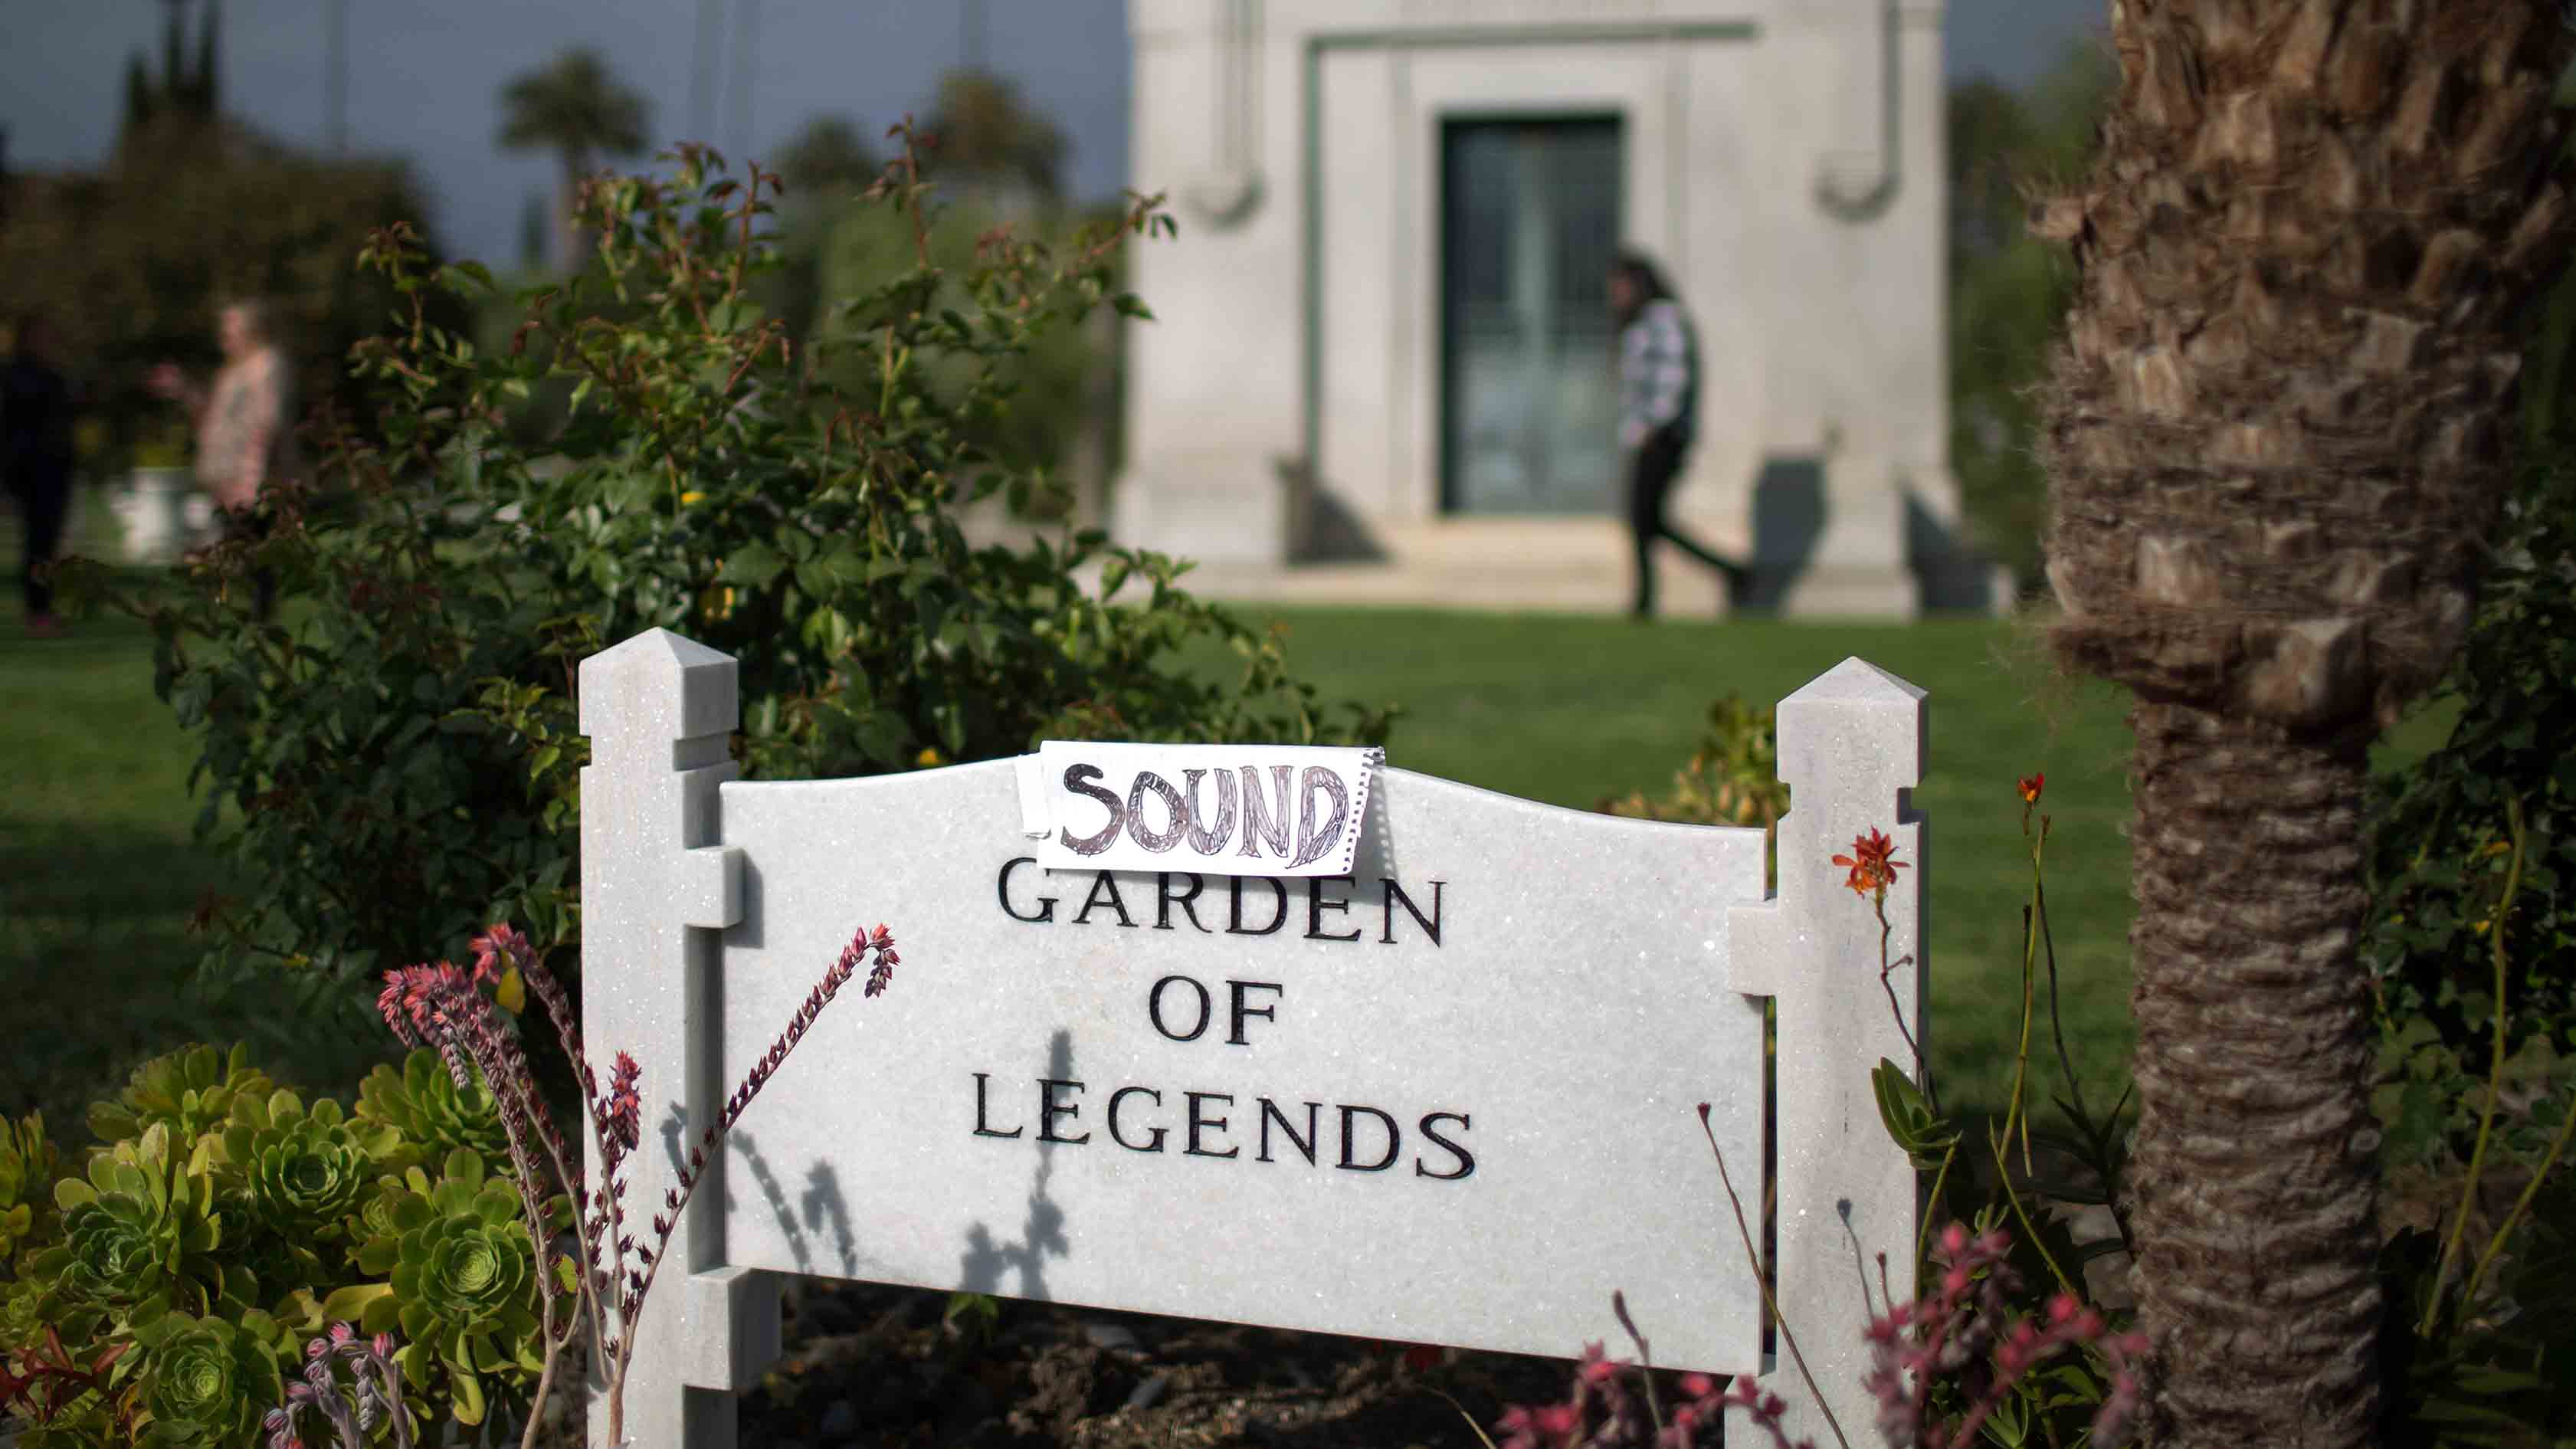 An improvised sign turns the Garden of Legends to the Sound Garden of Legends where Chris Cornell is buried following funeral services for Soundgarden frontman Chris Cornell were held at Hollywood Forever Cemetery on May 26, 2017 in Hollywood, California.